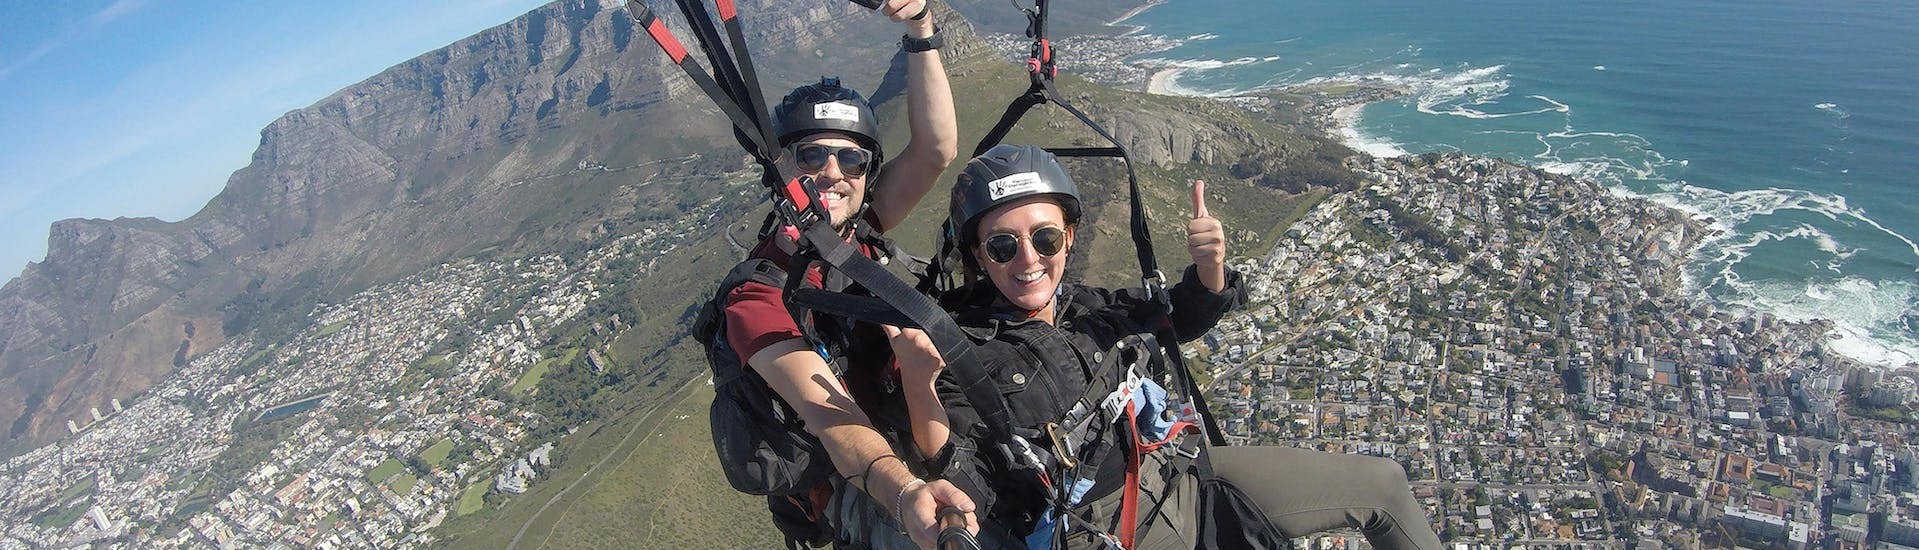 Happy woman flys with her tandem pilot over the city, enjoying the view of the sea and the mountains during paragliding in Cape Town with Hi5 Tandem Paragliding Cape Town.